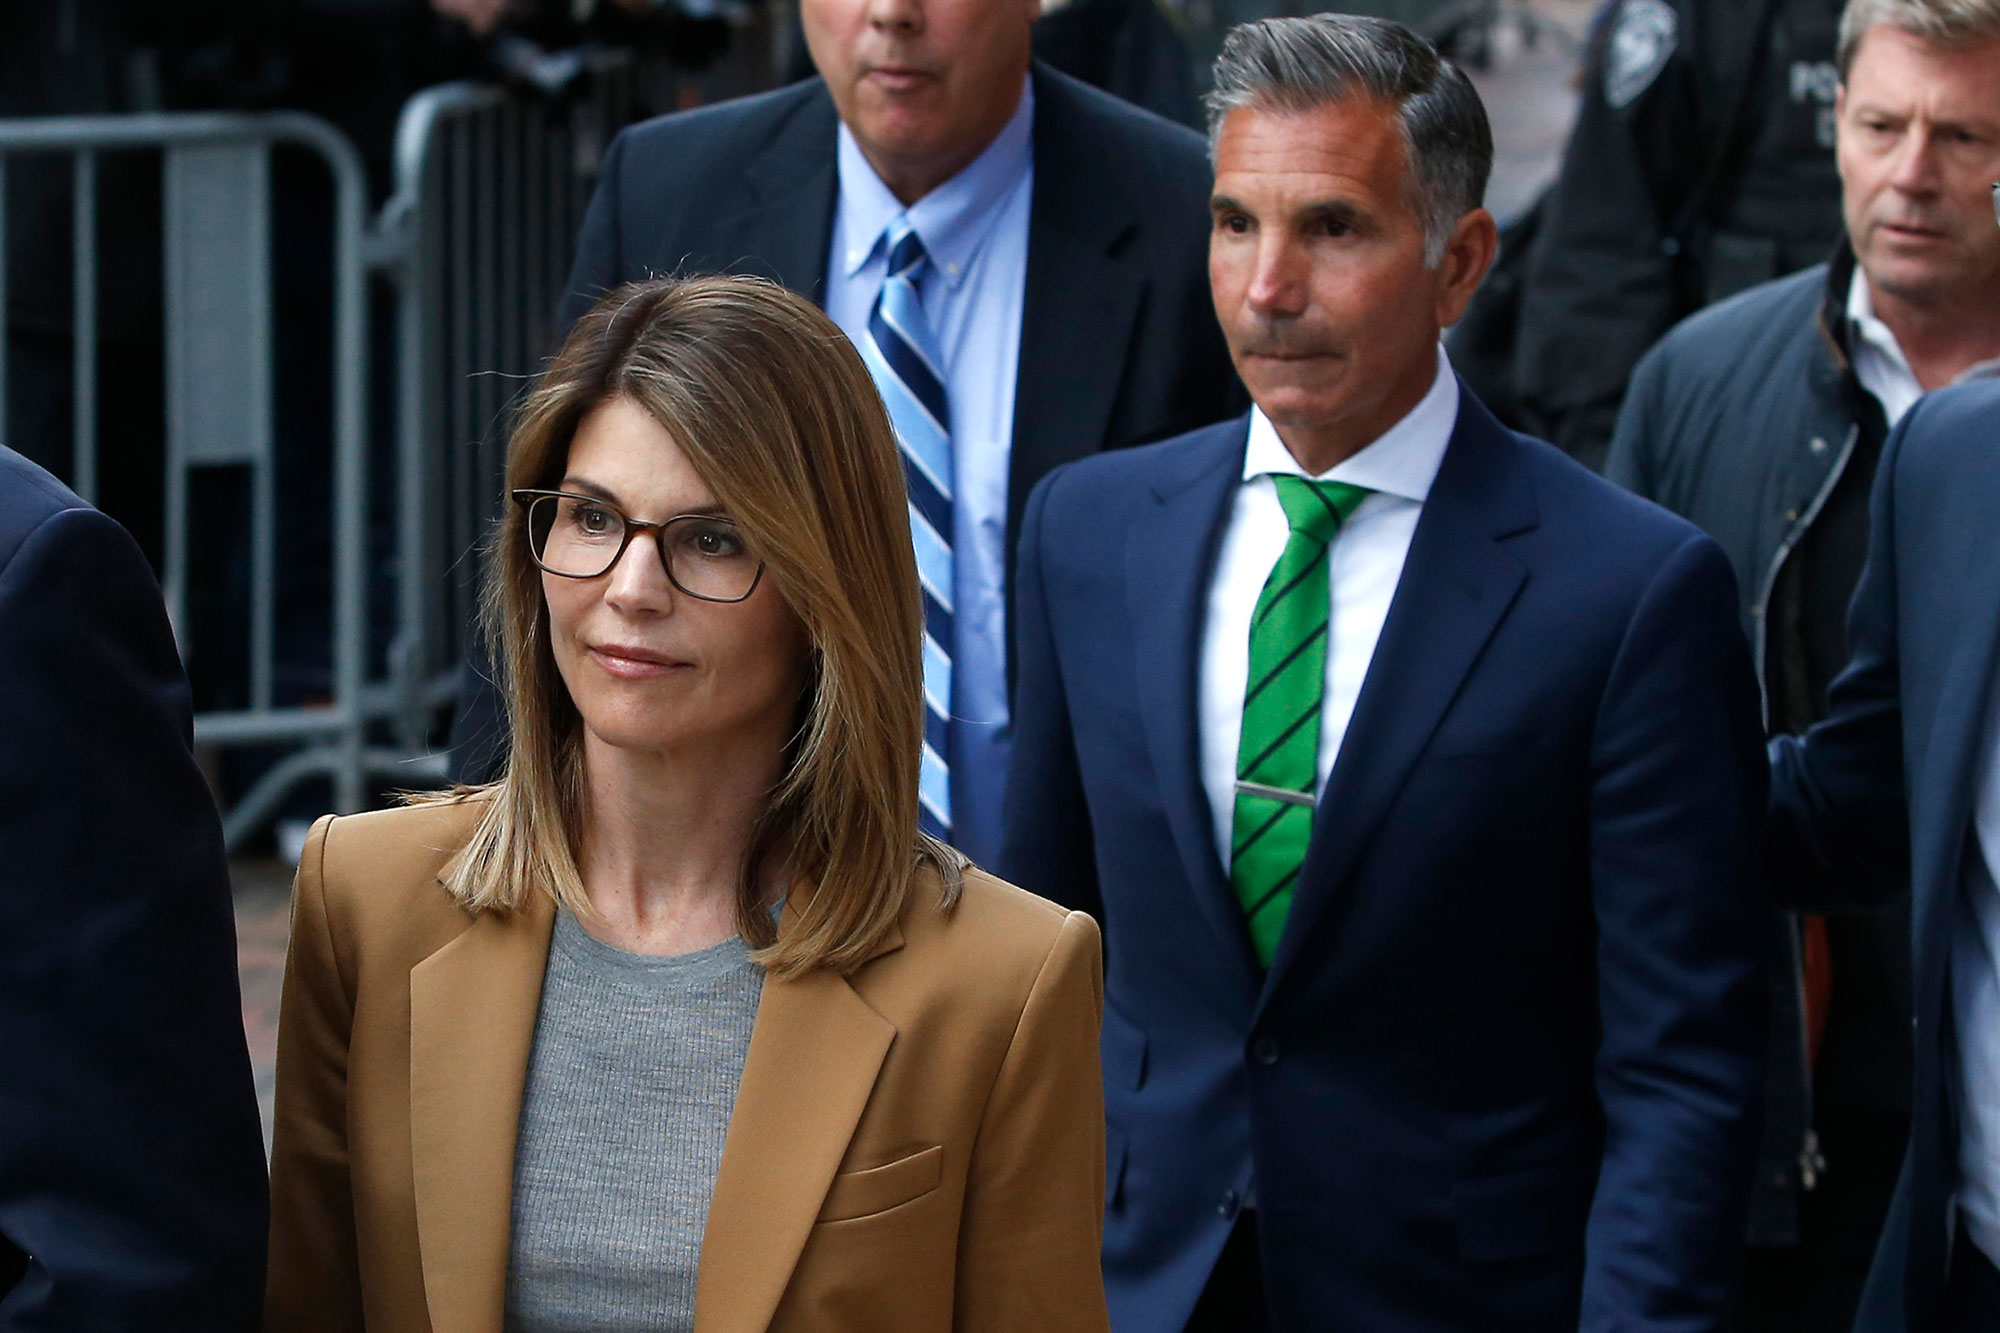 Lori Loughlin and Mossimo Giannulli Are 'Beyond Relieved' to Complete Prison Sentences: Source